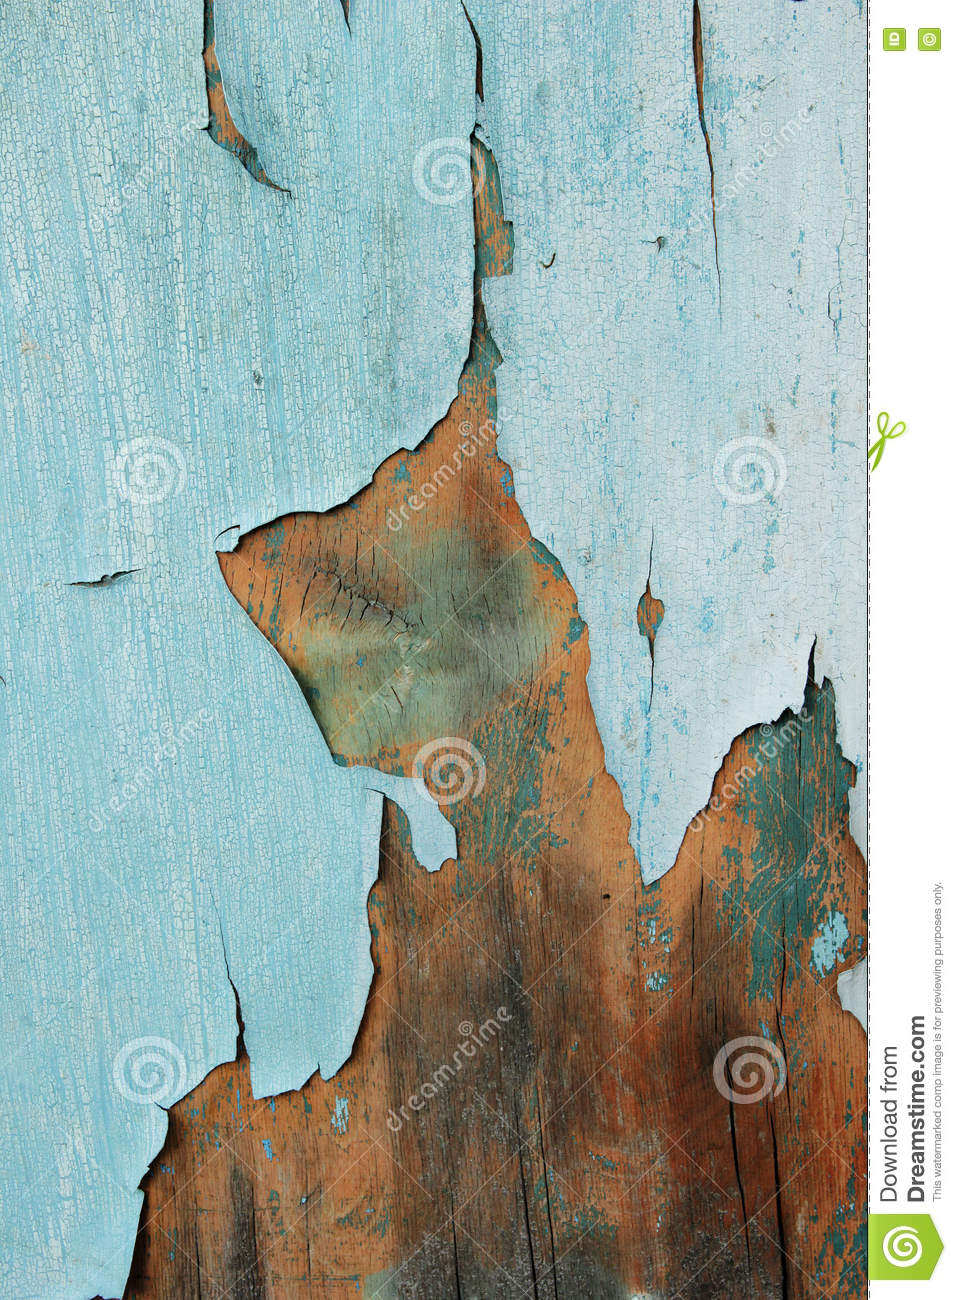 Old Painted Cracky Blue Wooden Texture Vintage Rustic Style